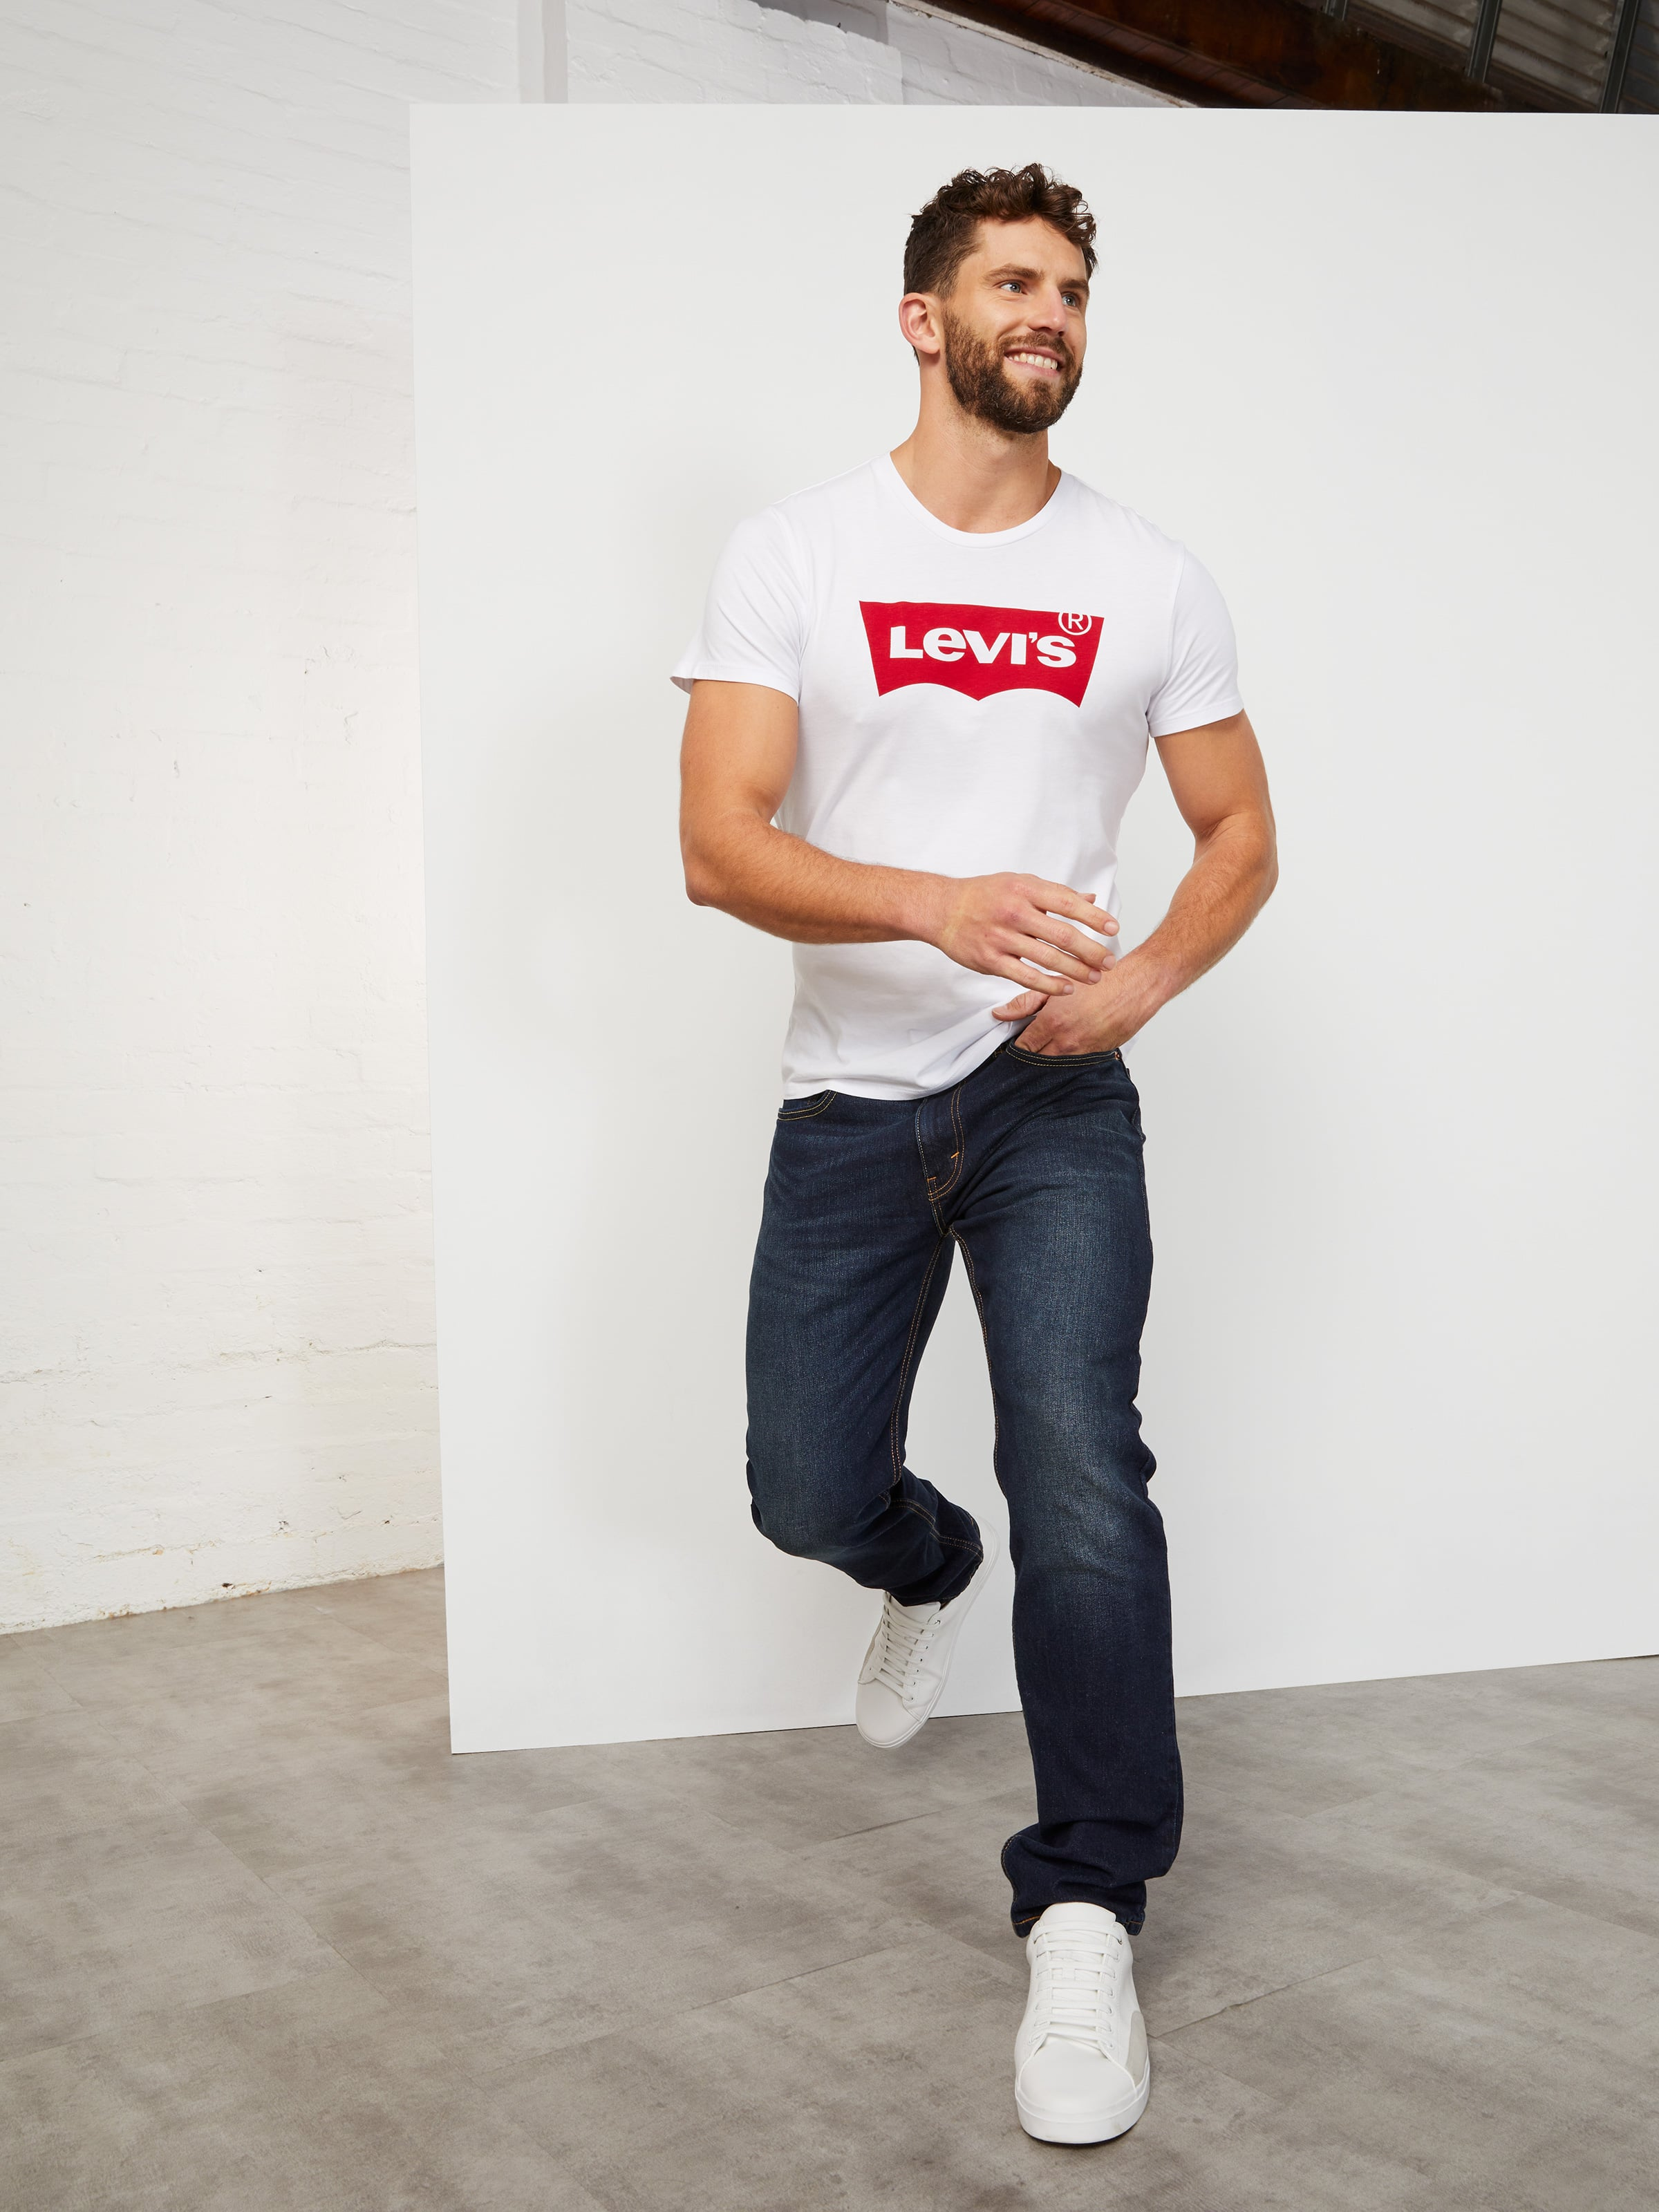 54caa9f0ffe373 Image for Levi s 502 Taper Jean In Sequoia Blue from Just Jeans ...